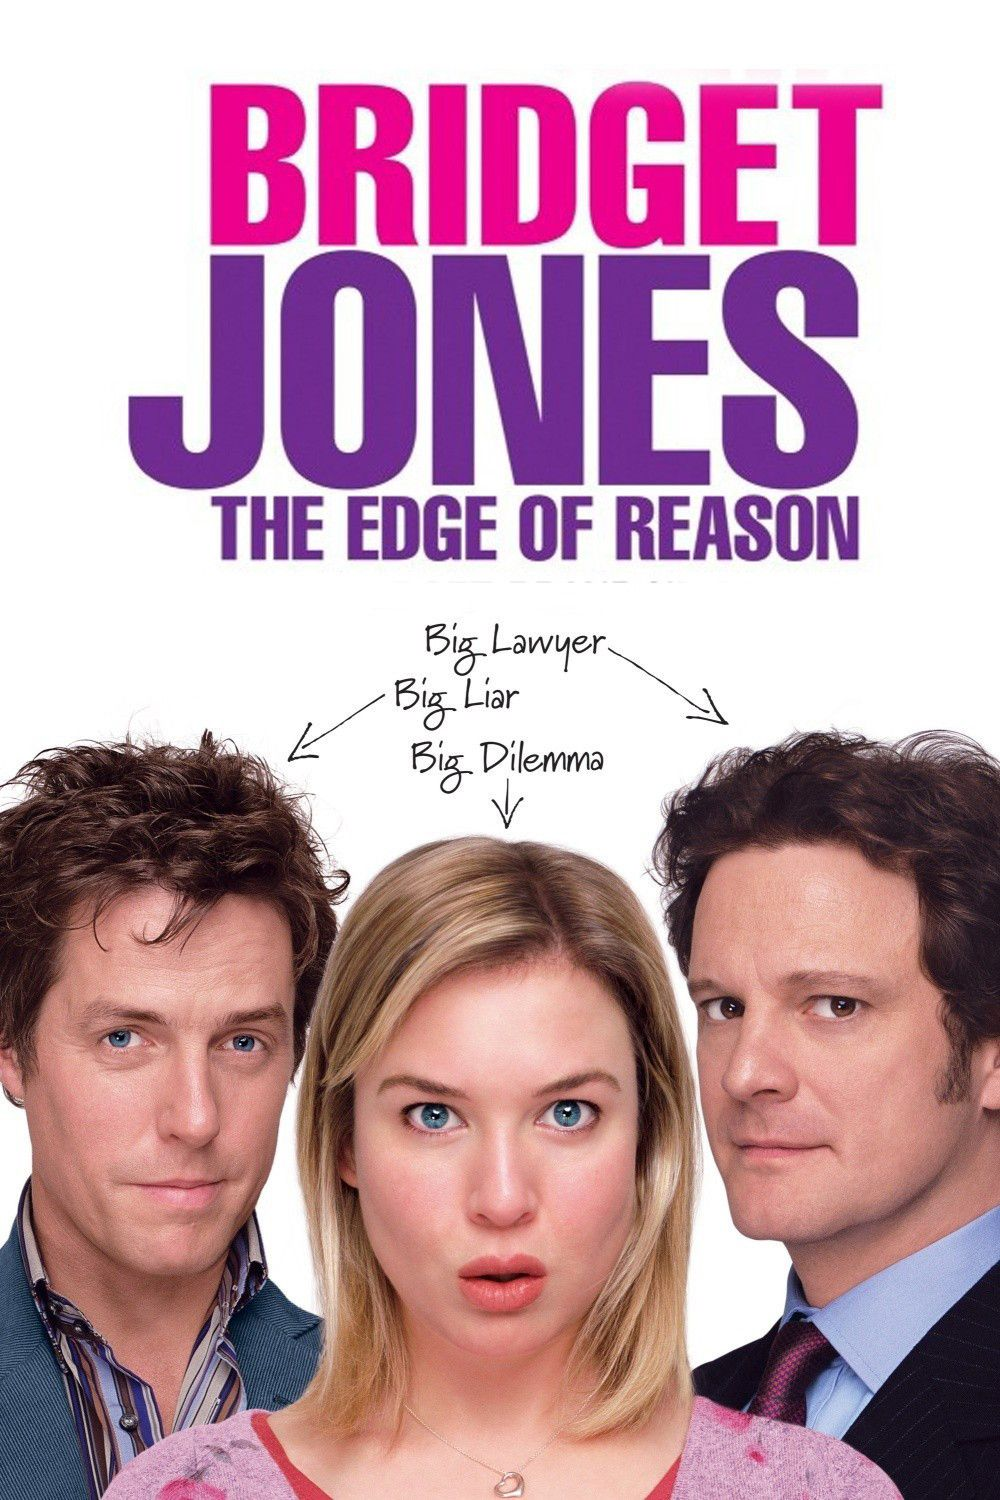 Affiche Poster bridget jones âge edge raison reason disney miramax